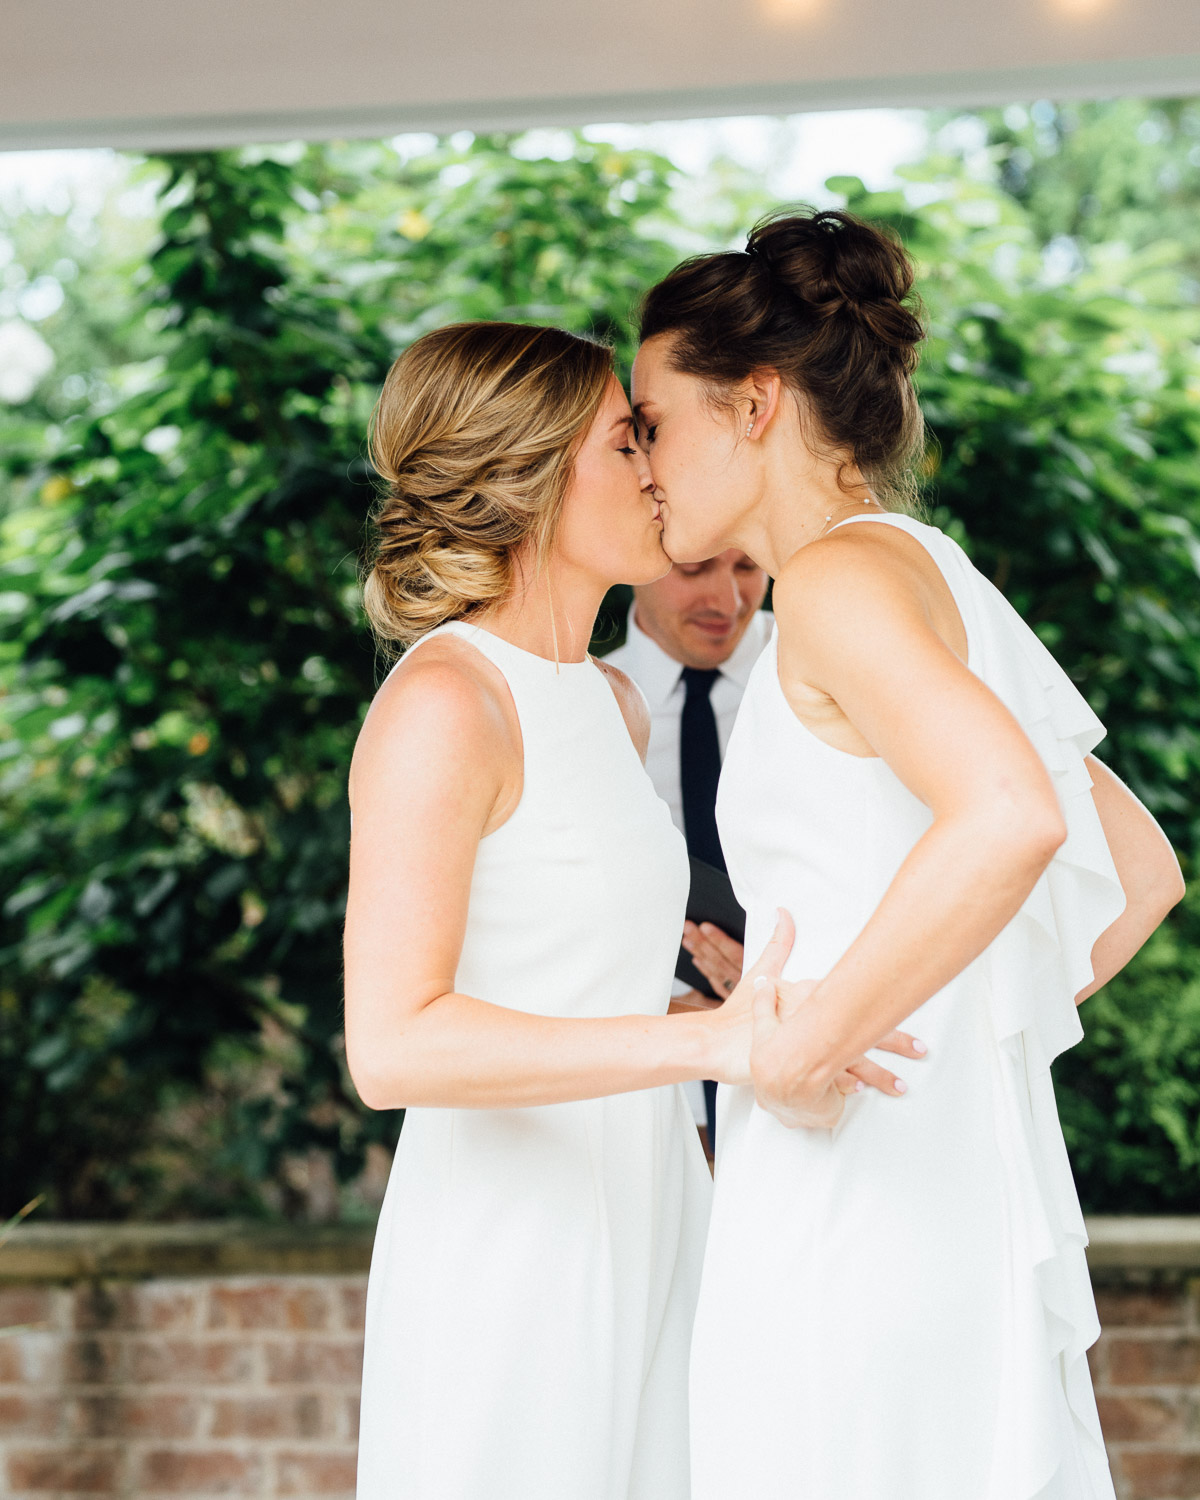 lesbian-wedding-kiss Becky and Kelly | Intimate Backyard Wedding